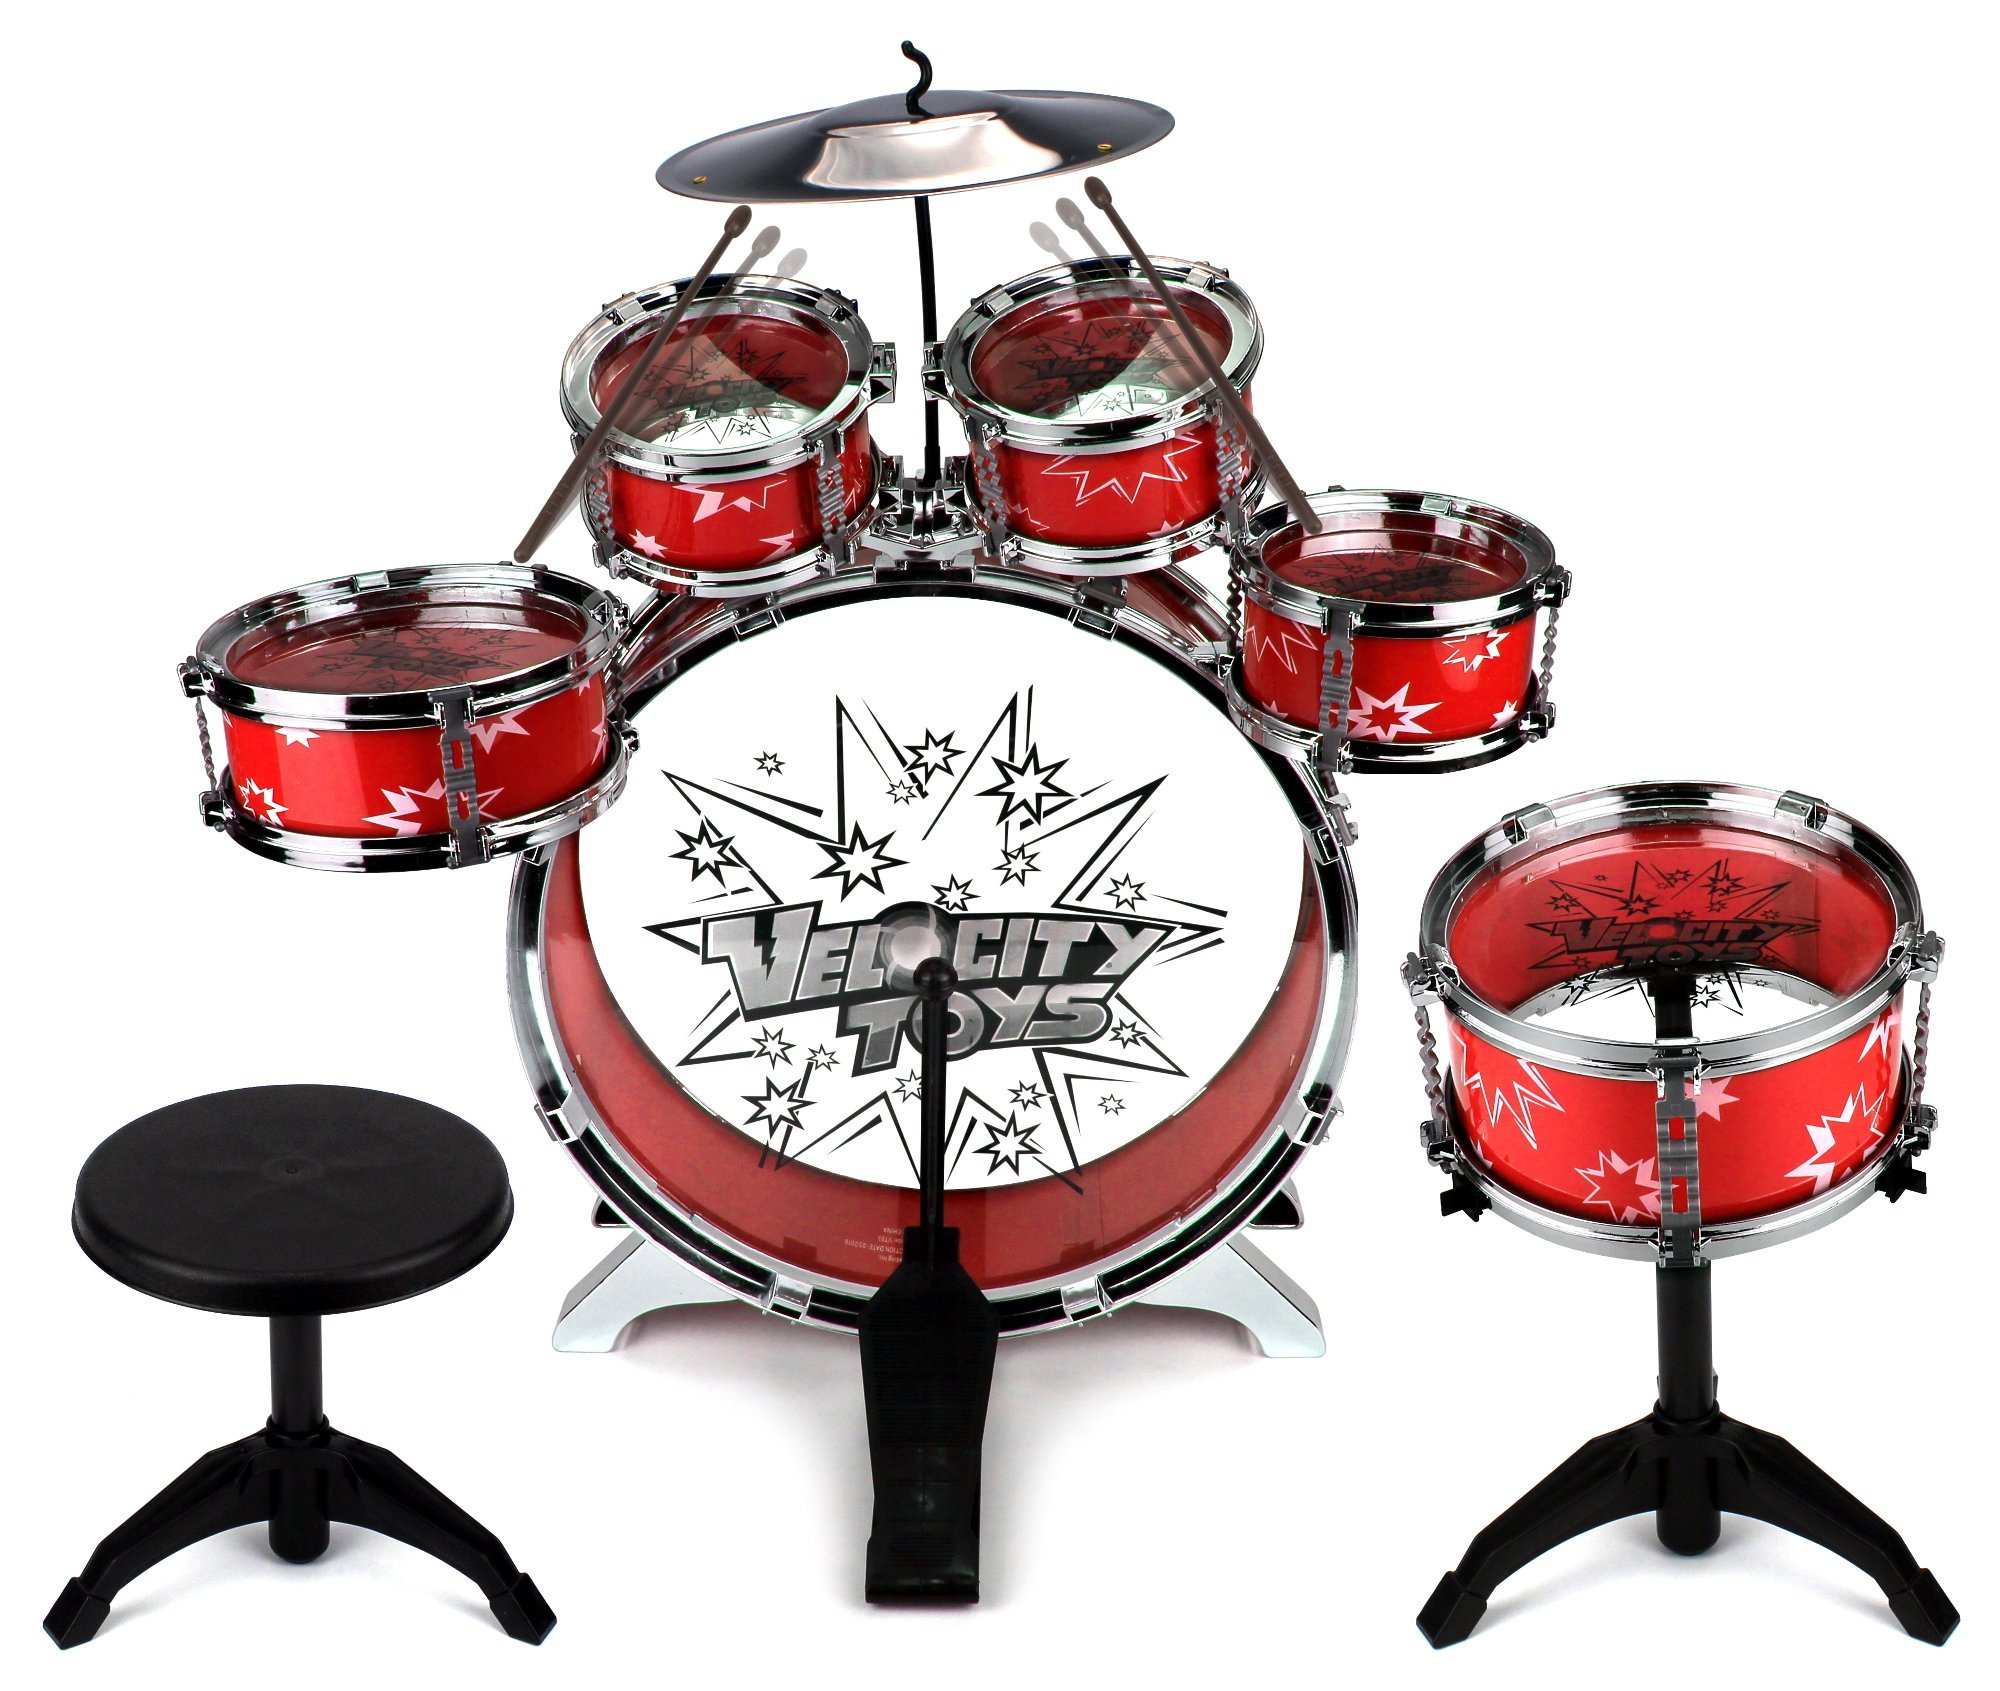 Velocity Toys 11 Piece Children's Kid's Musical Instrument Drum Play Set w/ 6 Drums, Cymbal, Chair, Kick Pedal, Drumsticks (Red) by Velocity Toys